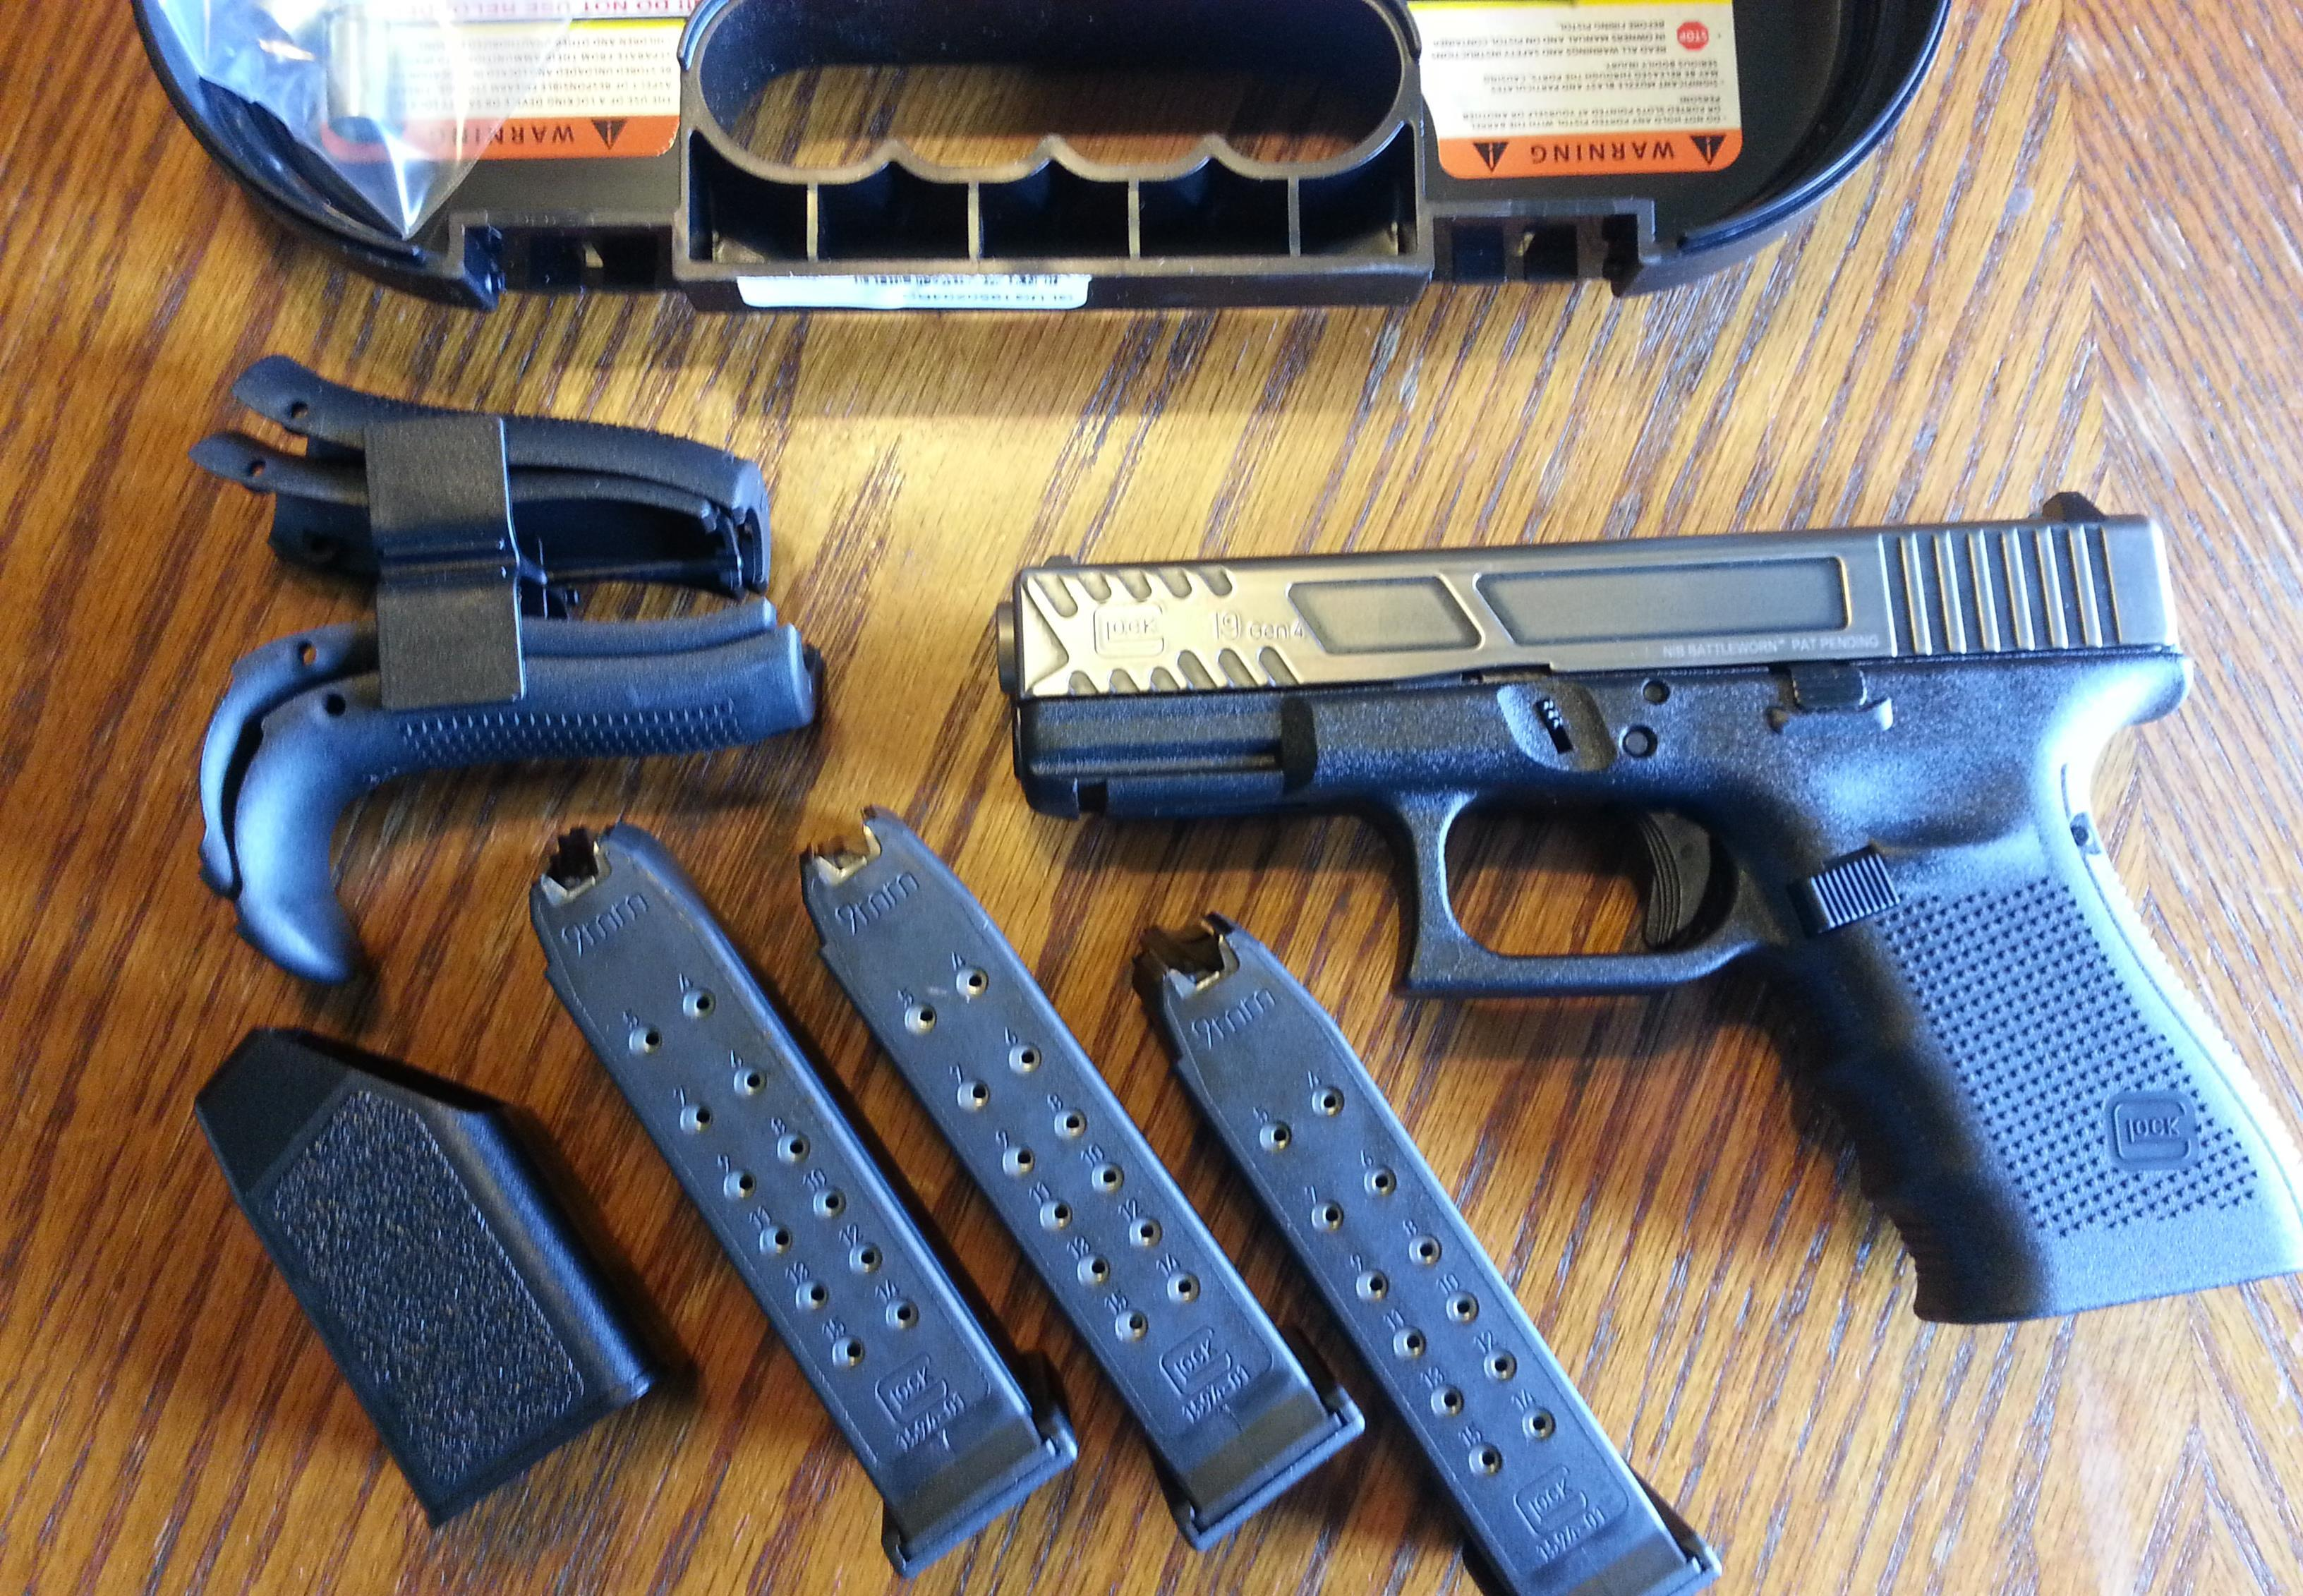 Glock 19 Gen 4 9mm Battle Worn - Buy Firearms Online|Buy Guns ...